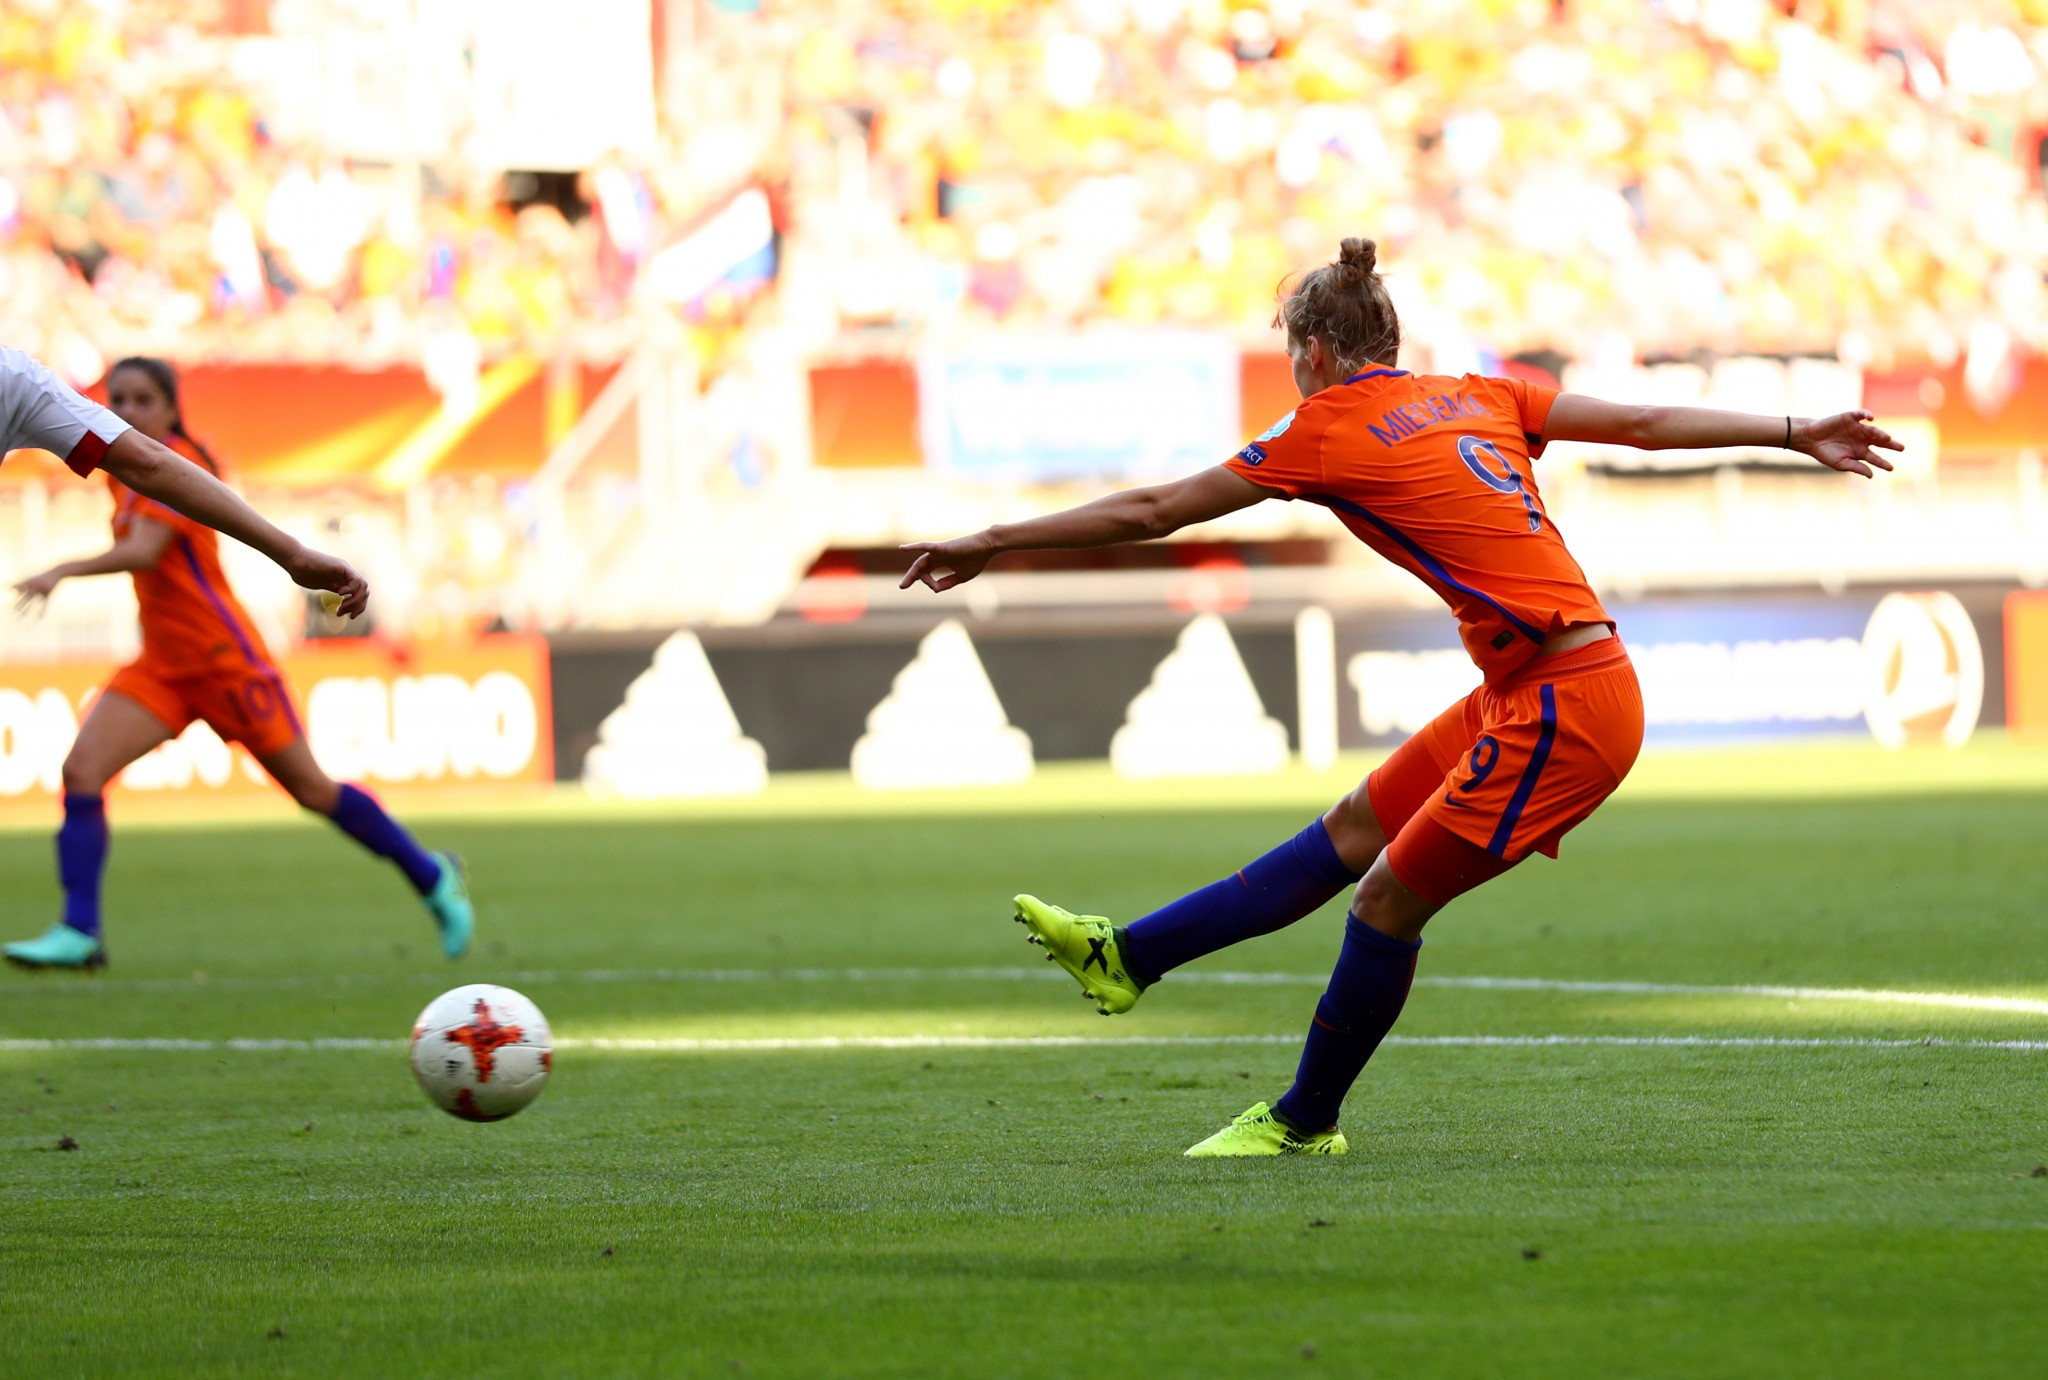 The Netherlands came out on top at the European Championships in 2017, beating Denmark in the final ©Getty Images